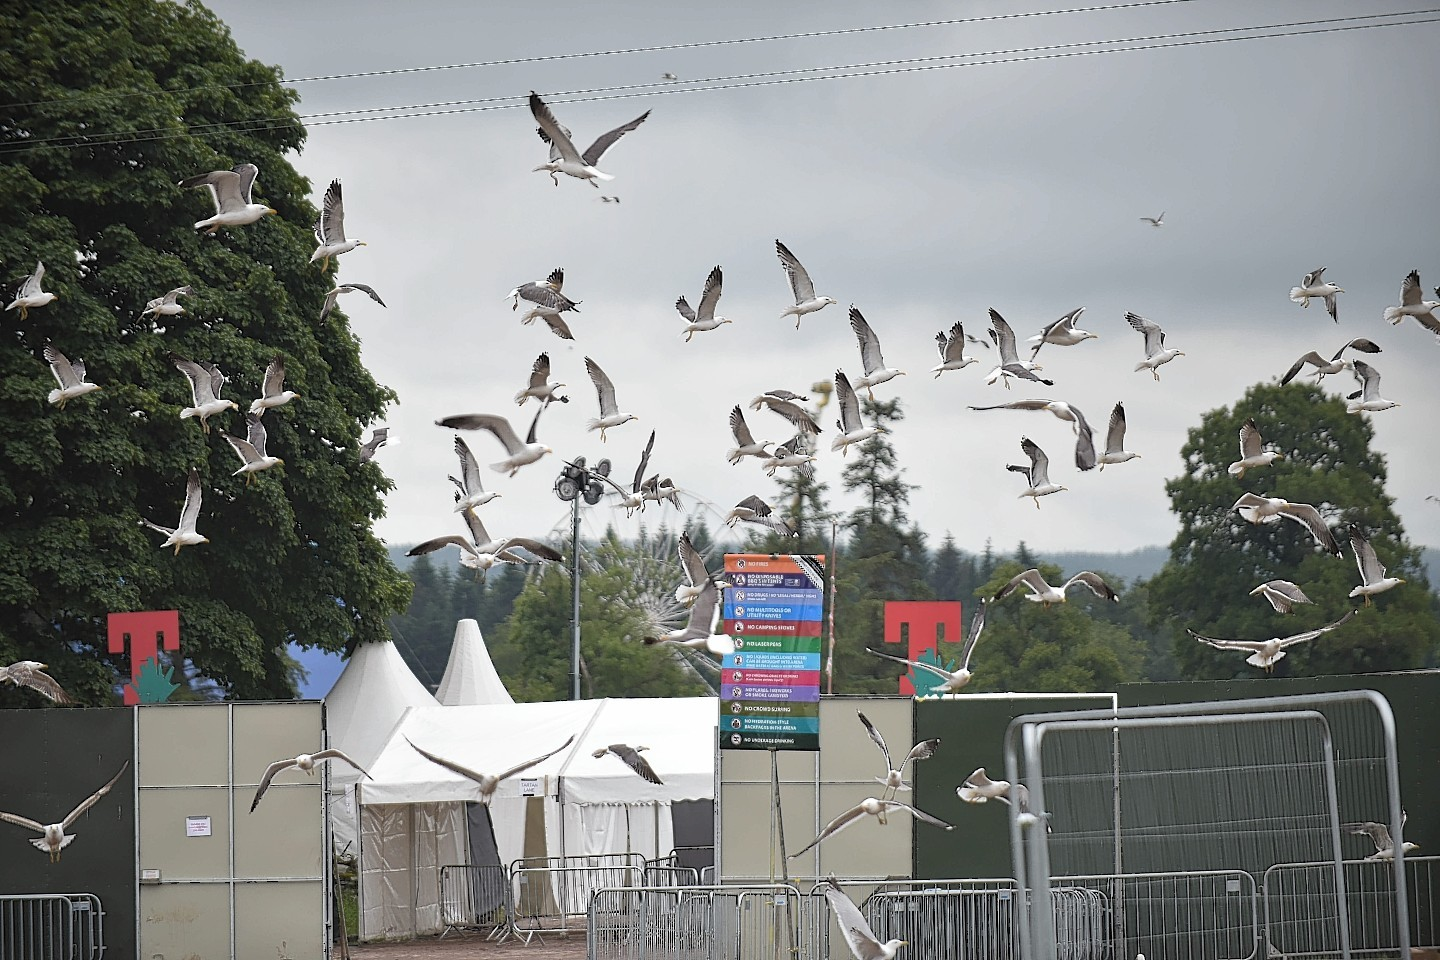 Seagulls are seen swarming near the entrance .